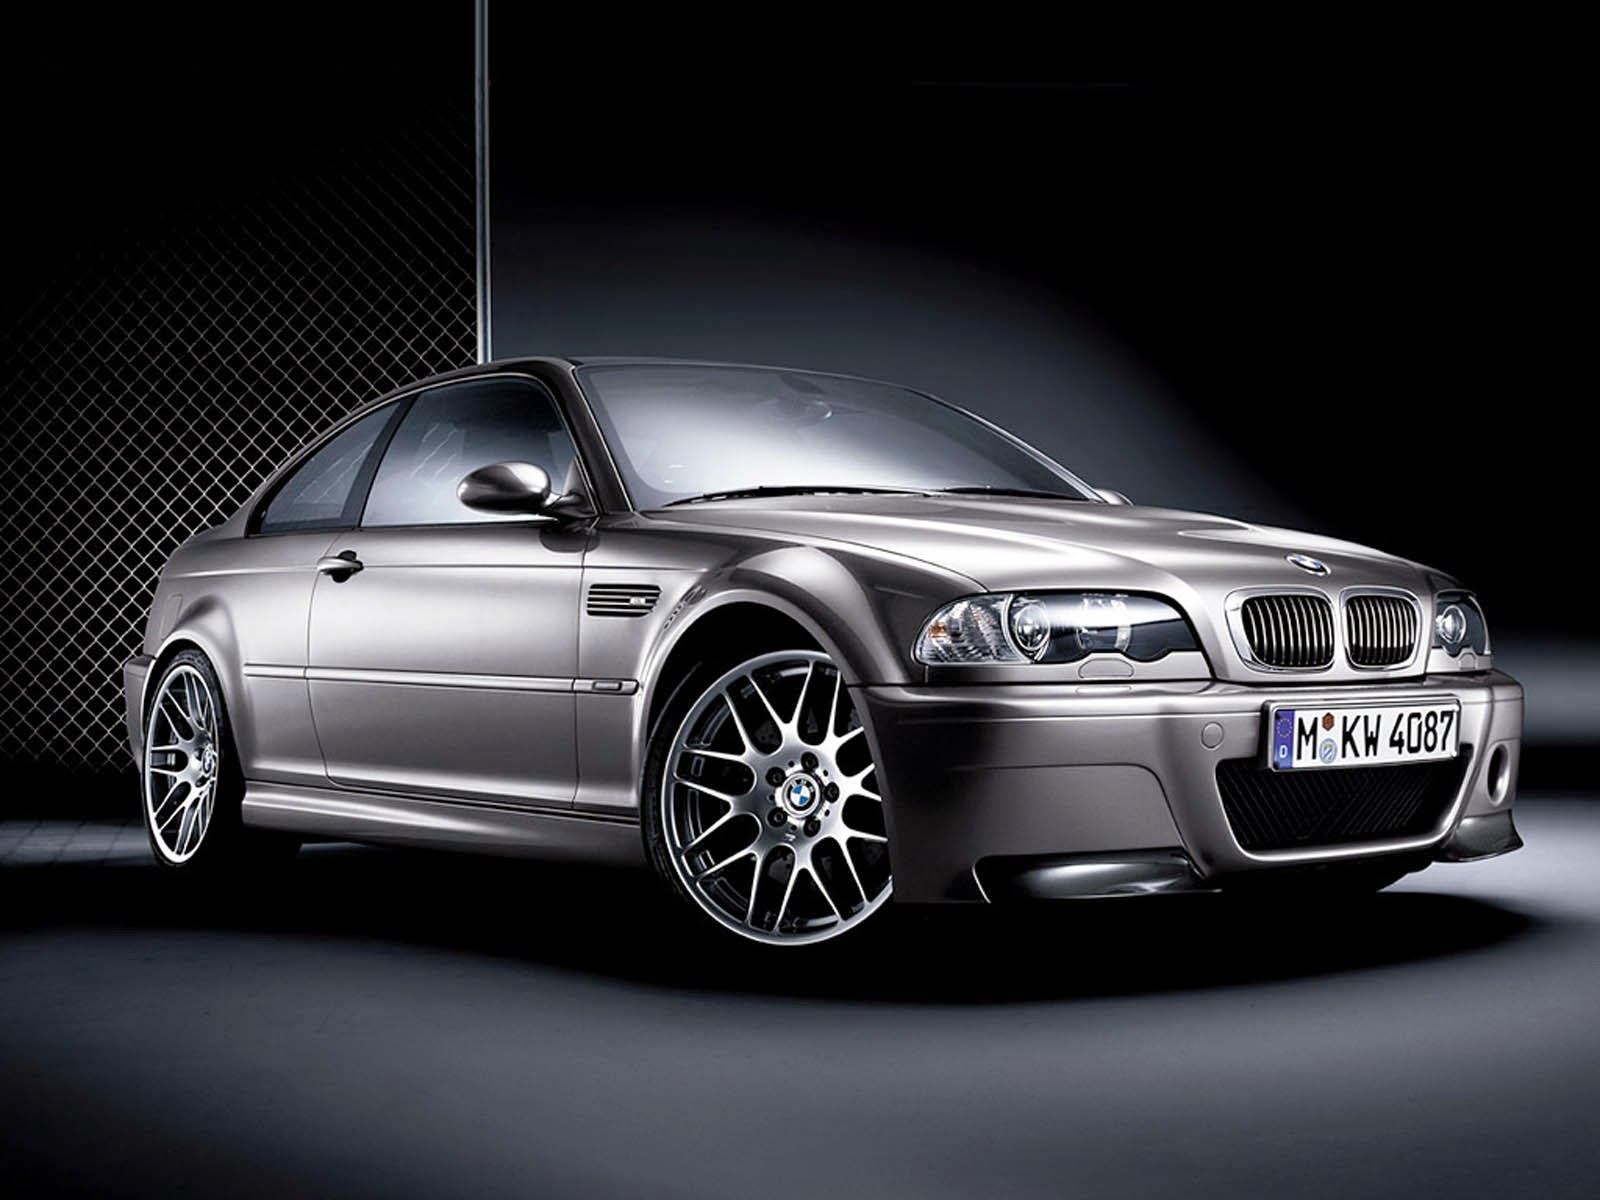 BMW M3 E46 CSL Car Photo